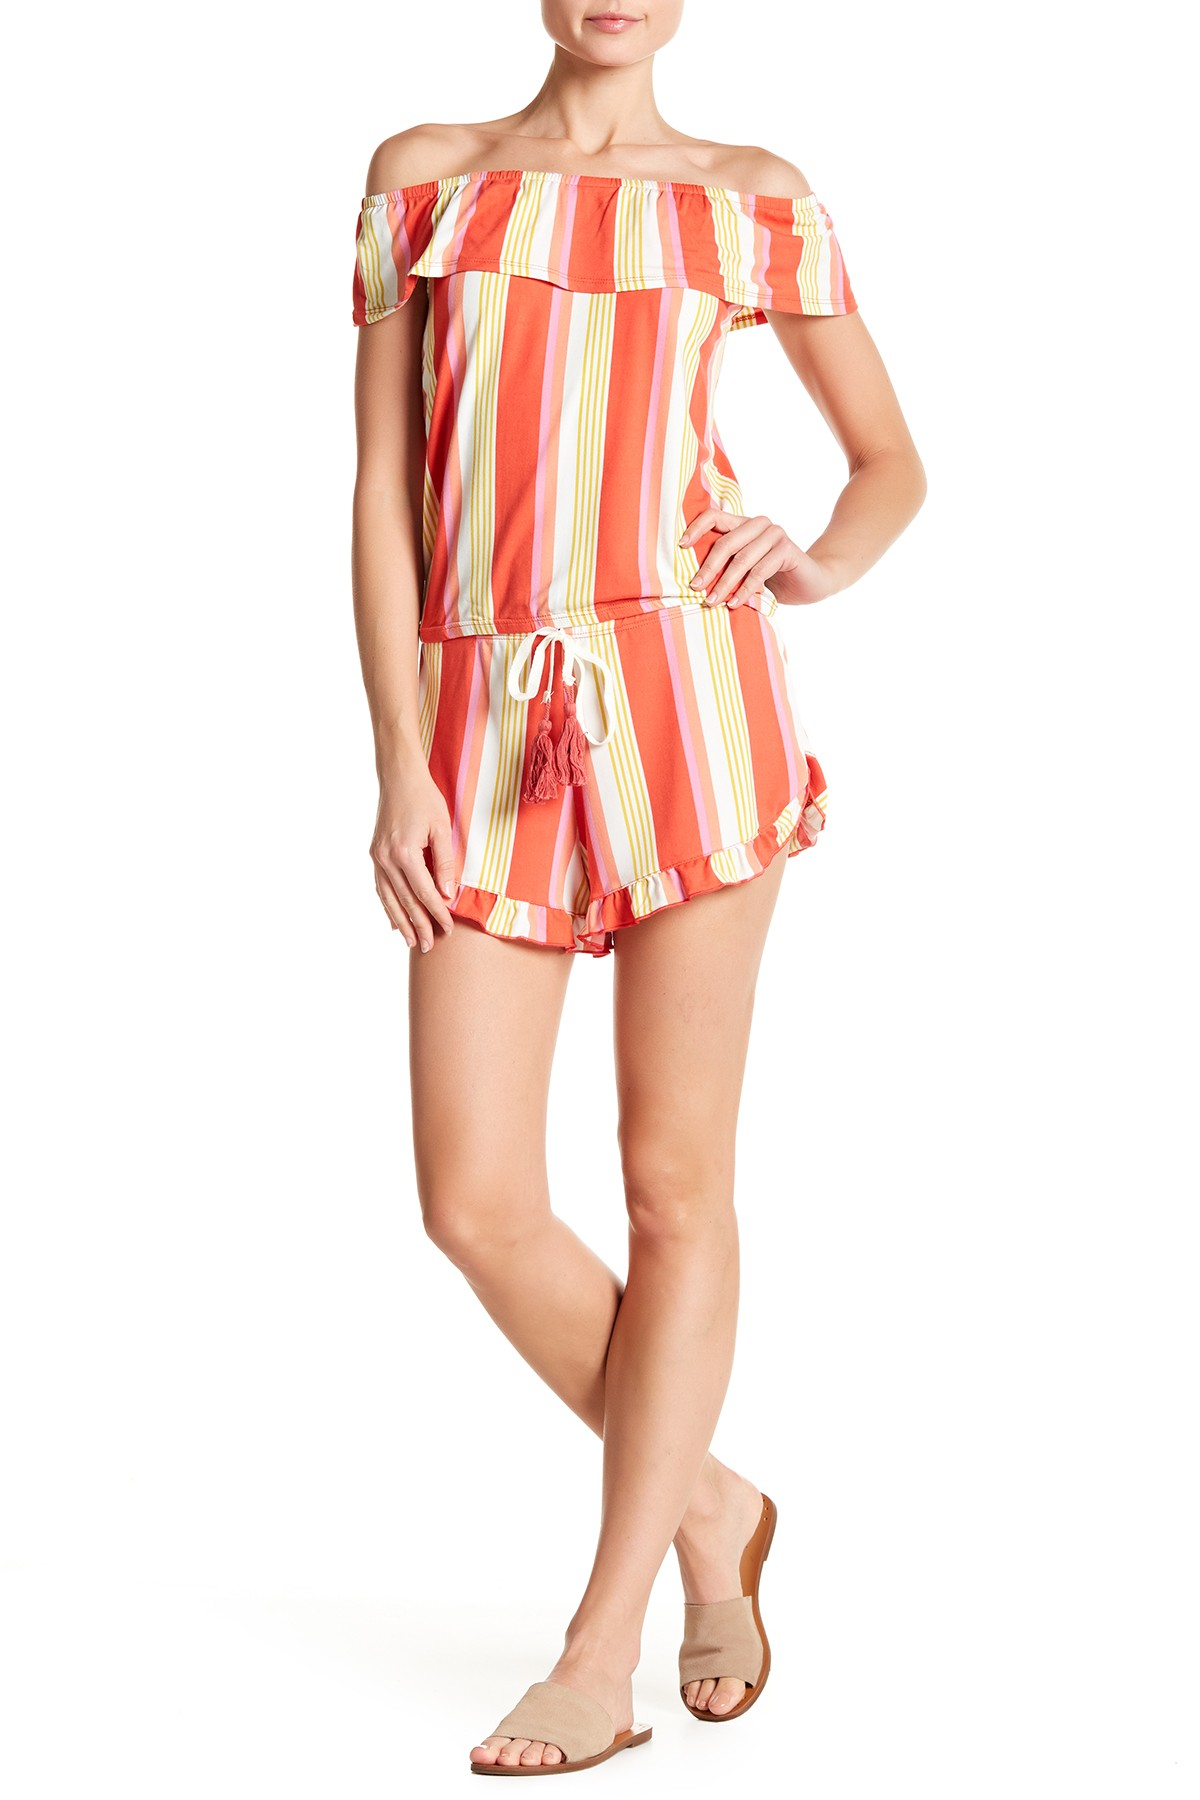 Poof-Striped-Short-Set